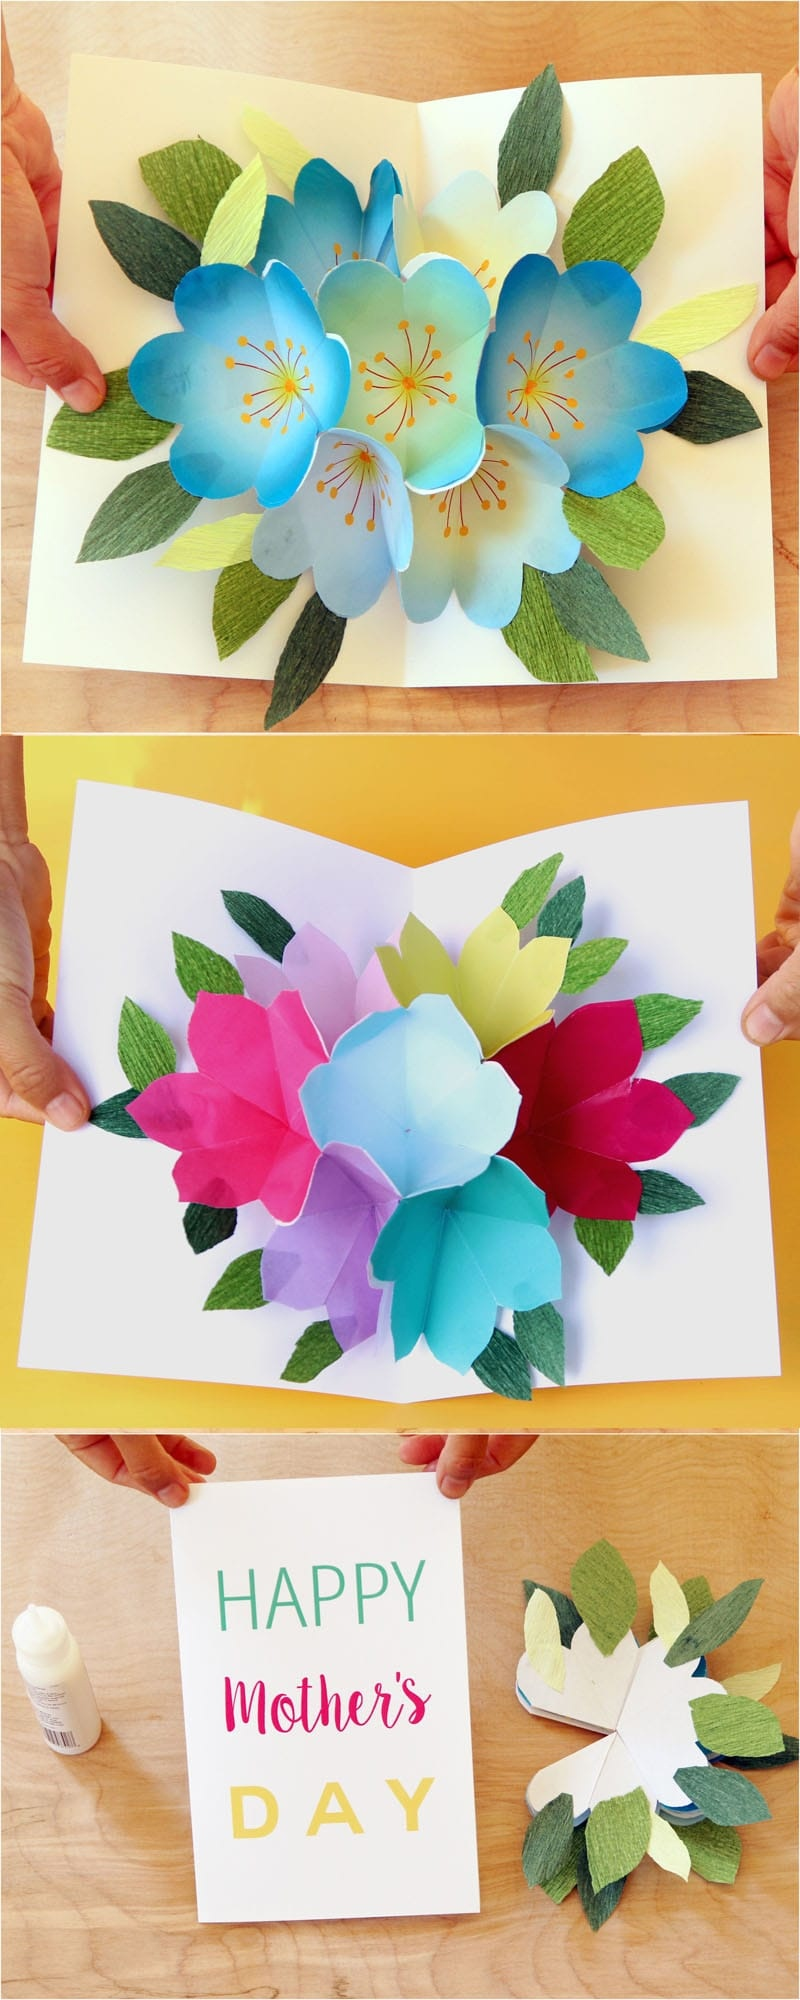 Pop Up Flowers Diy Printable Mother's Day Card - A Piece Of Rainbow - Free Printable Cards No Download Required